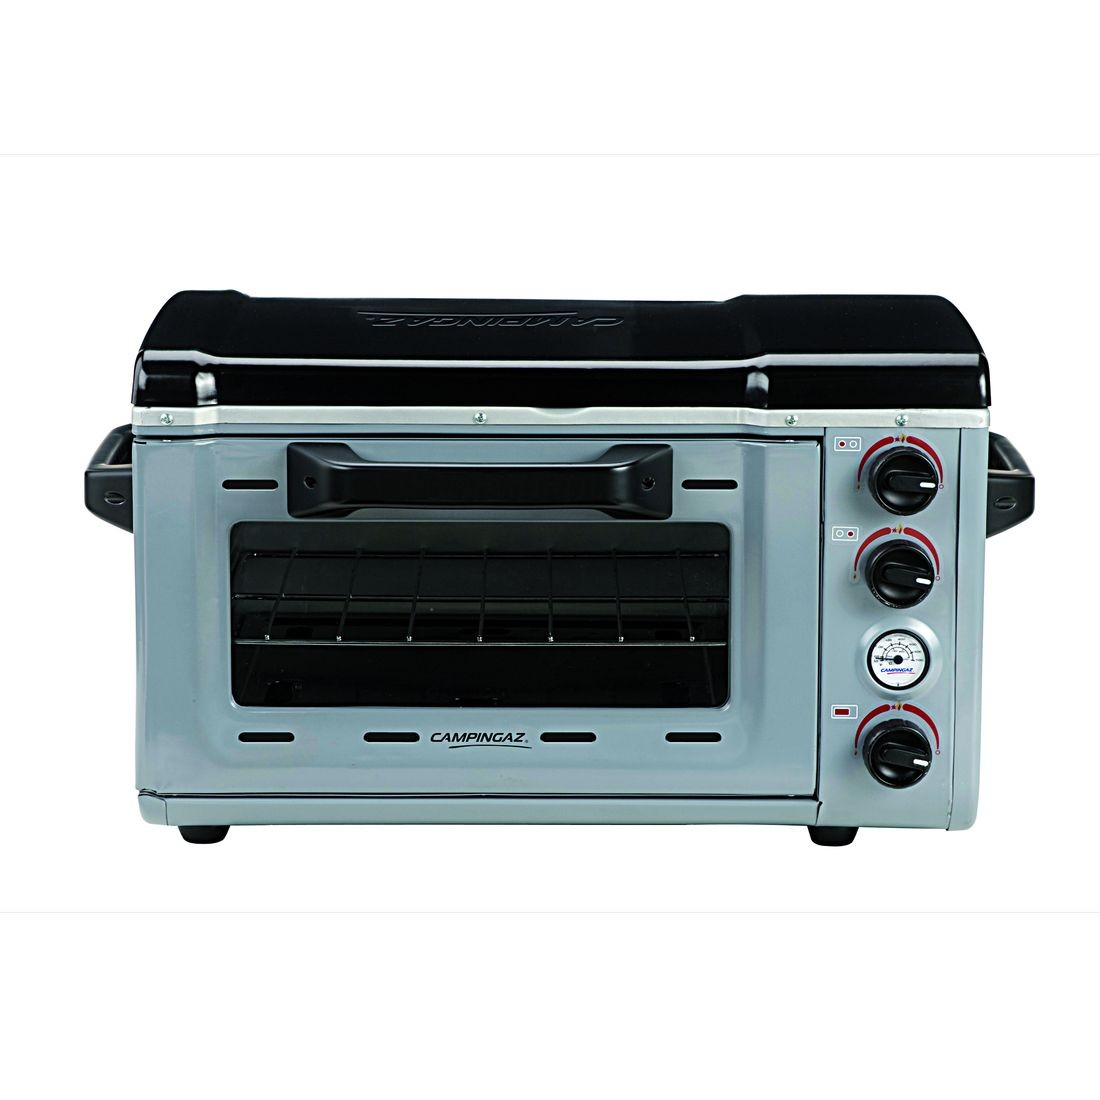 Camp Stove Oven Campingaz.Campingaz Camp Stove Oven Gas Stove Oven ...